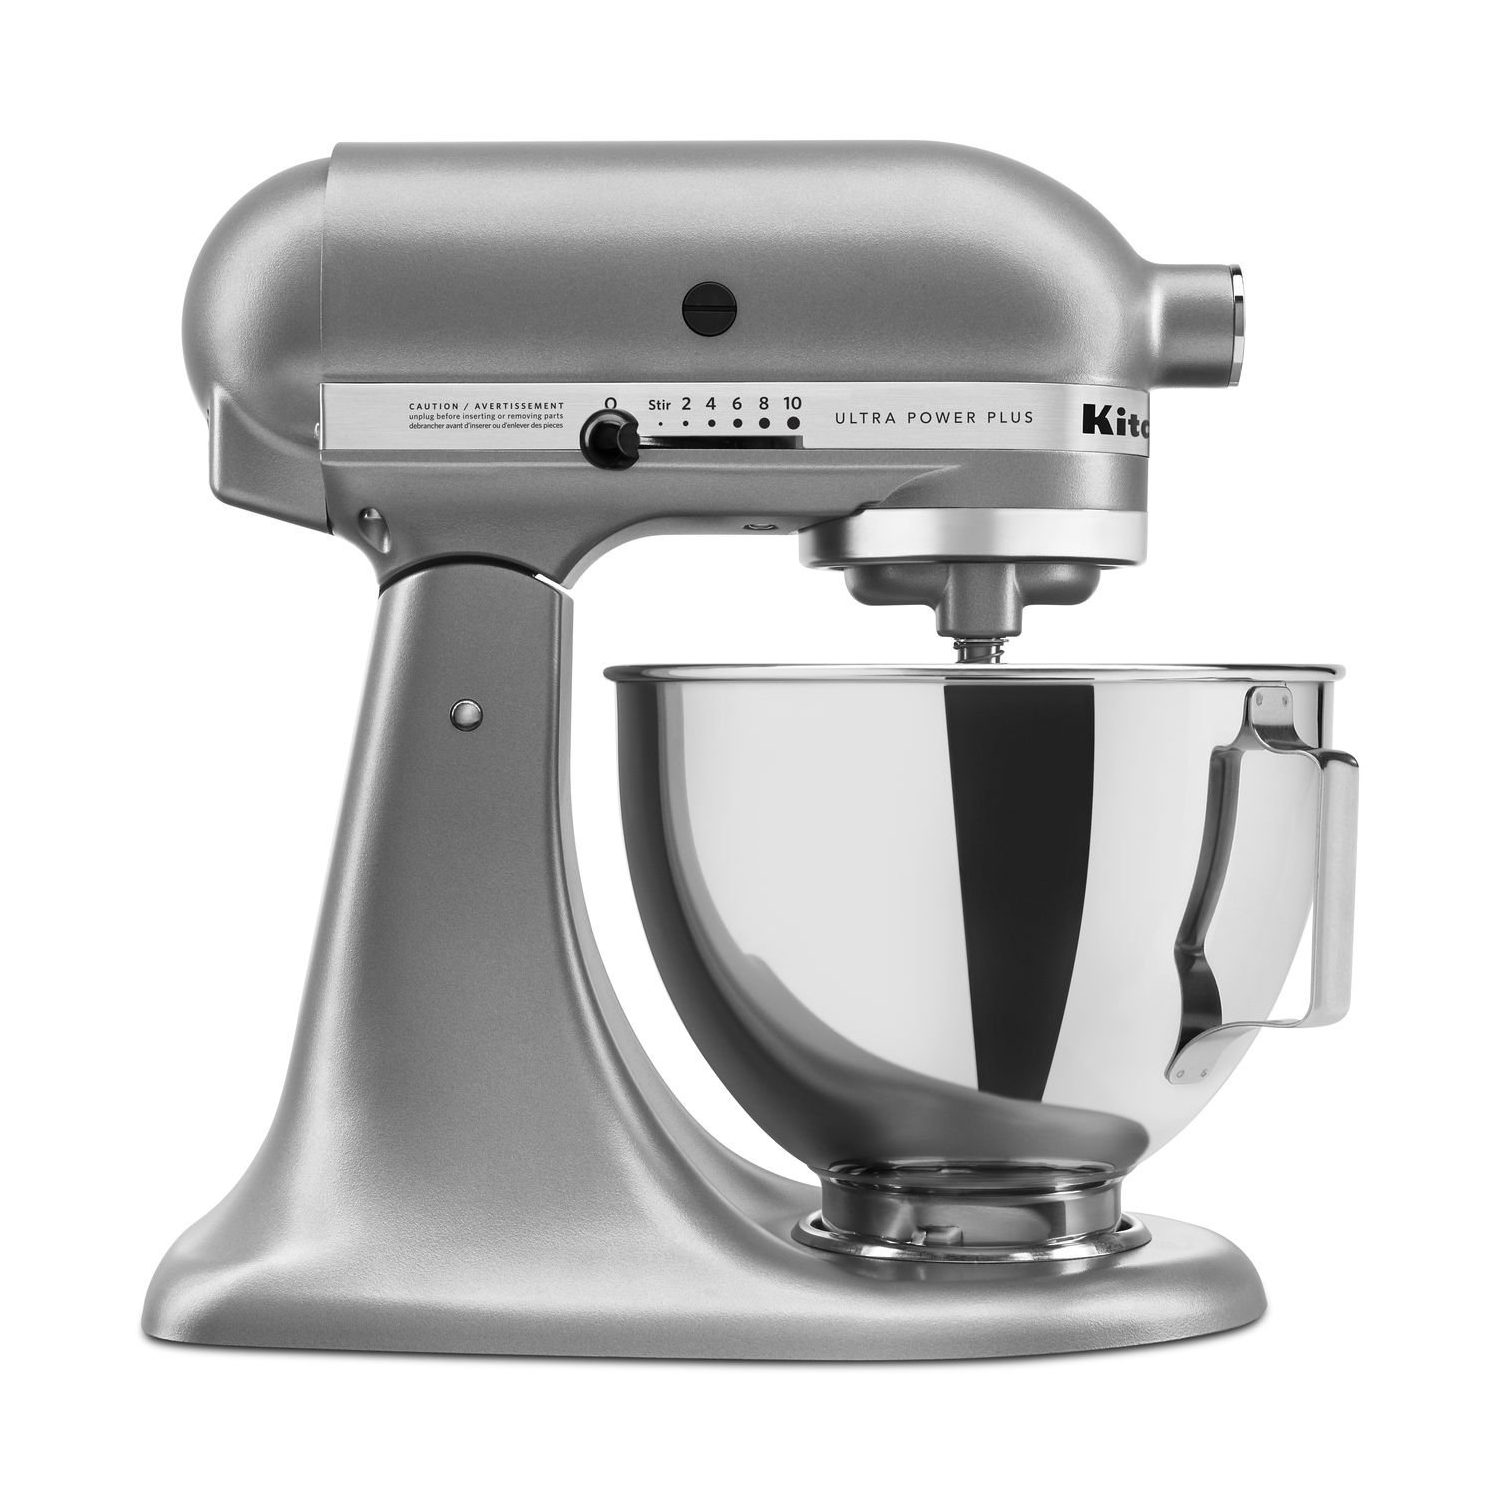 Stand Mixers: Professional, Tilt-head or Bowl-lift - Best Buy Canada